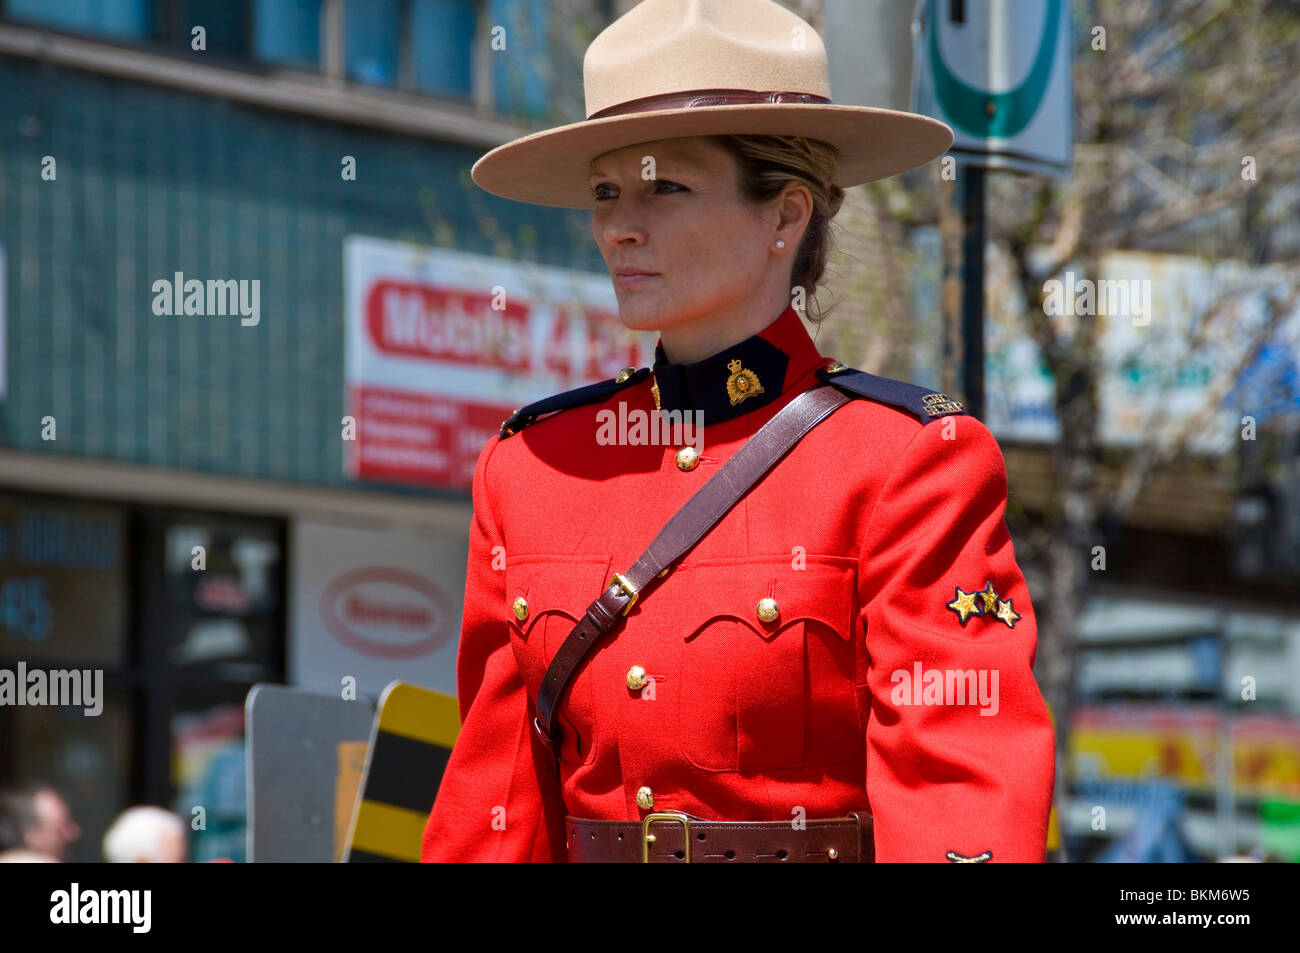 Female Officer Royal Canadian Mounted Police March In